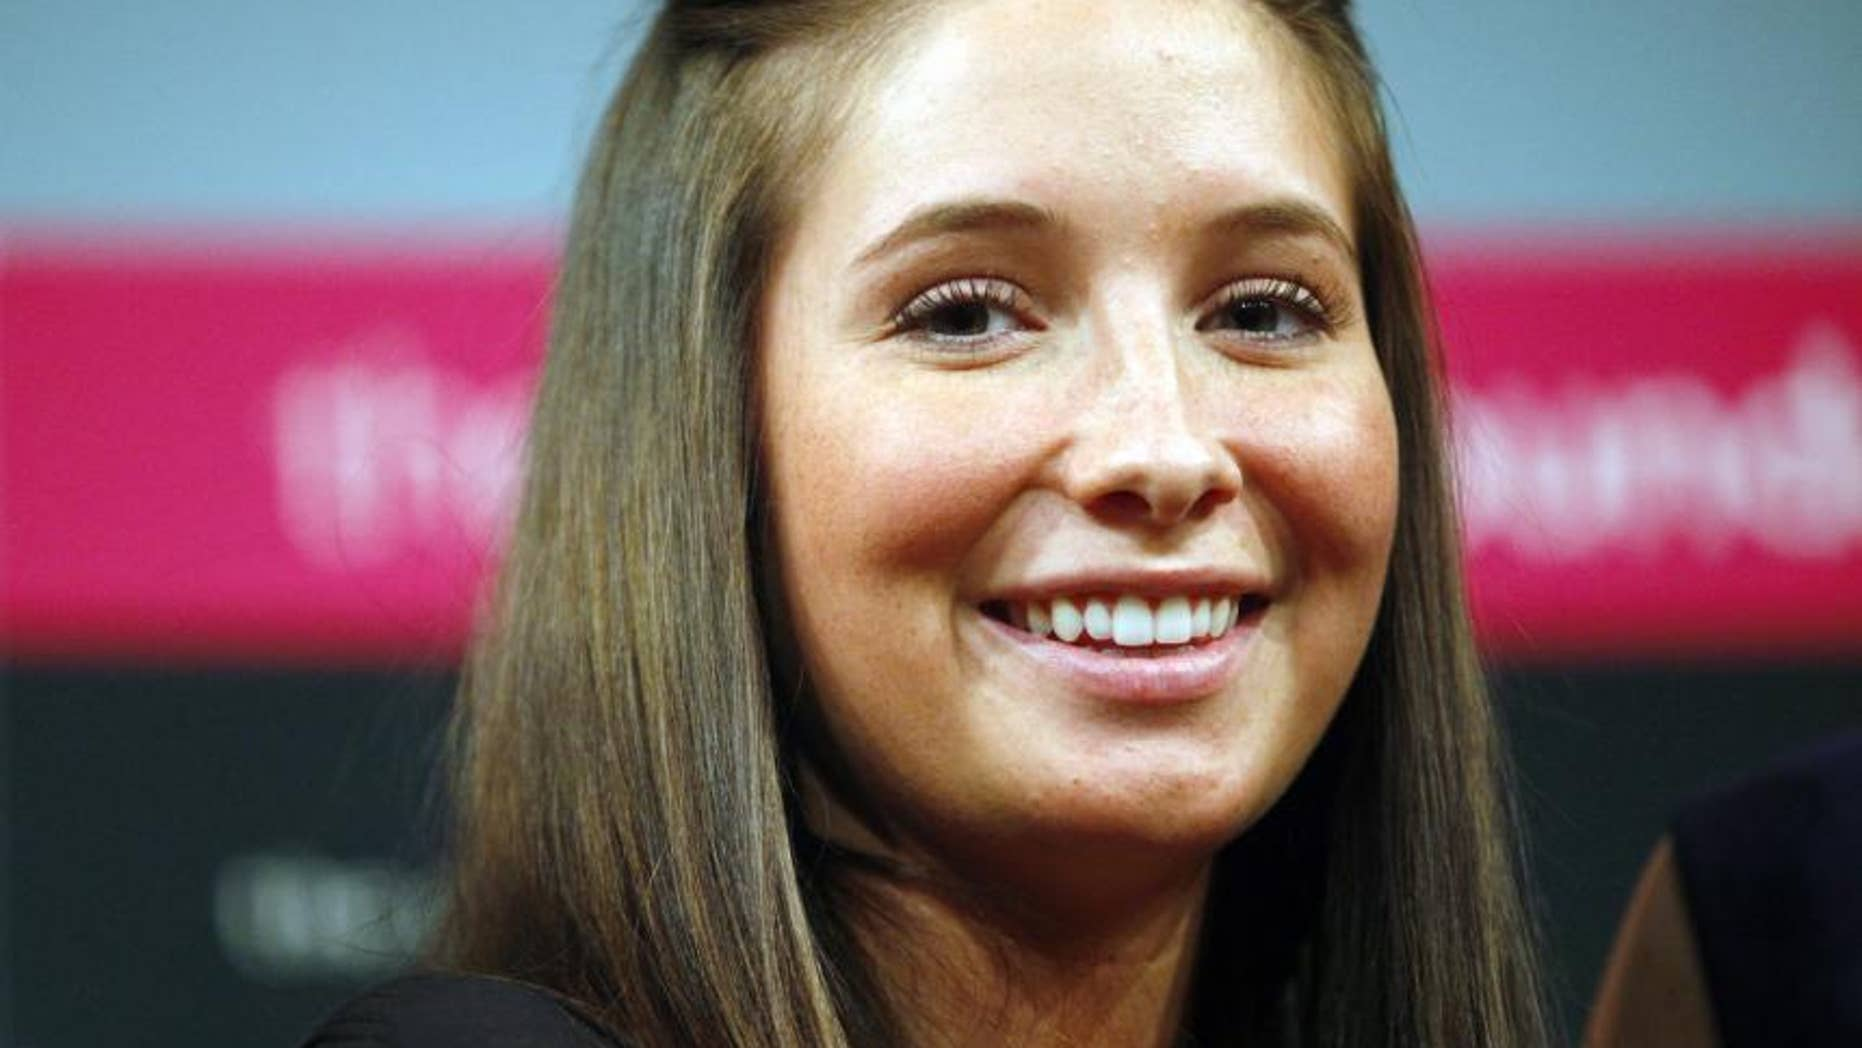 Bristol Palin got candid with her mom, Sarah, in new promo for MTV's 'Teen Mom OG.'